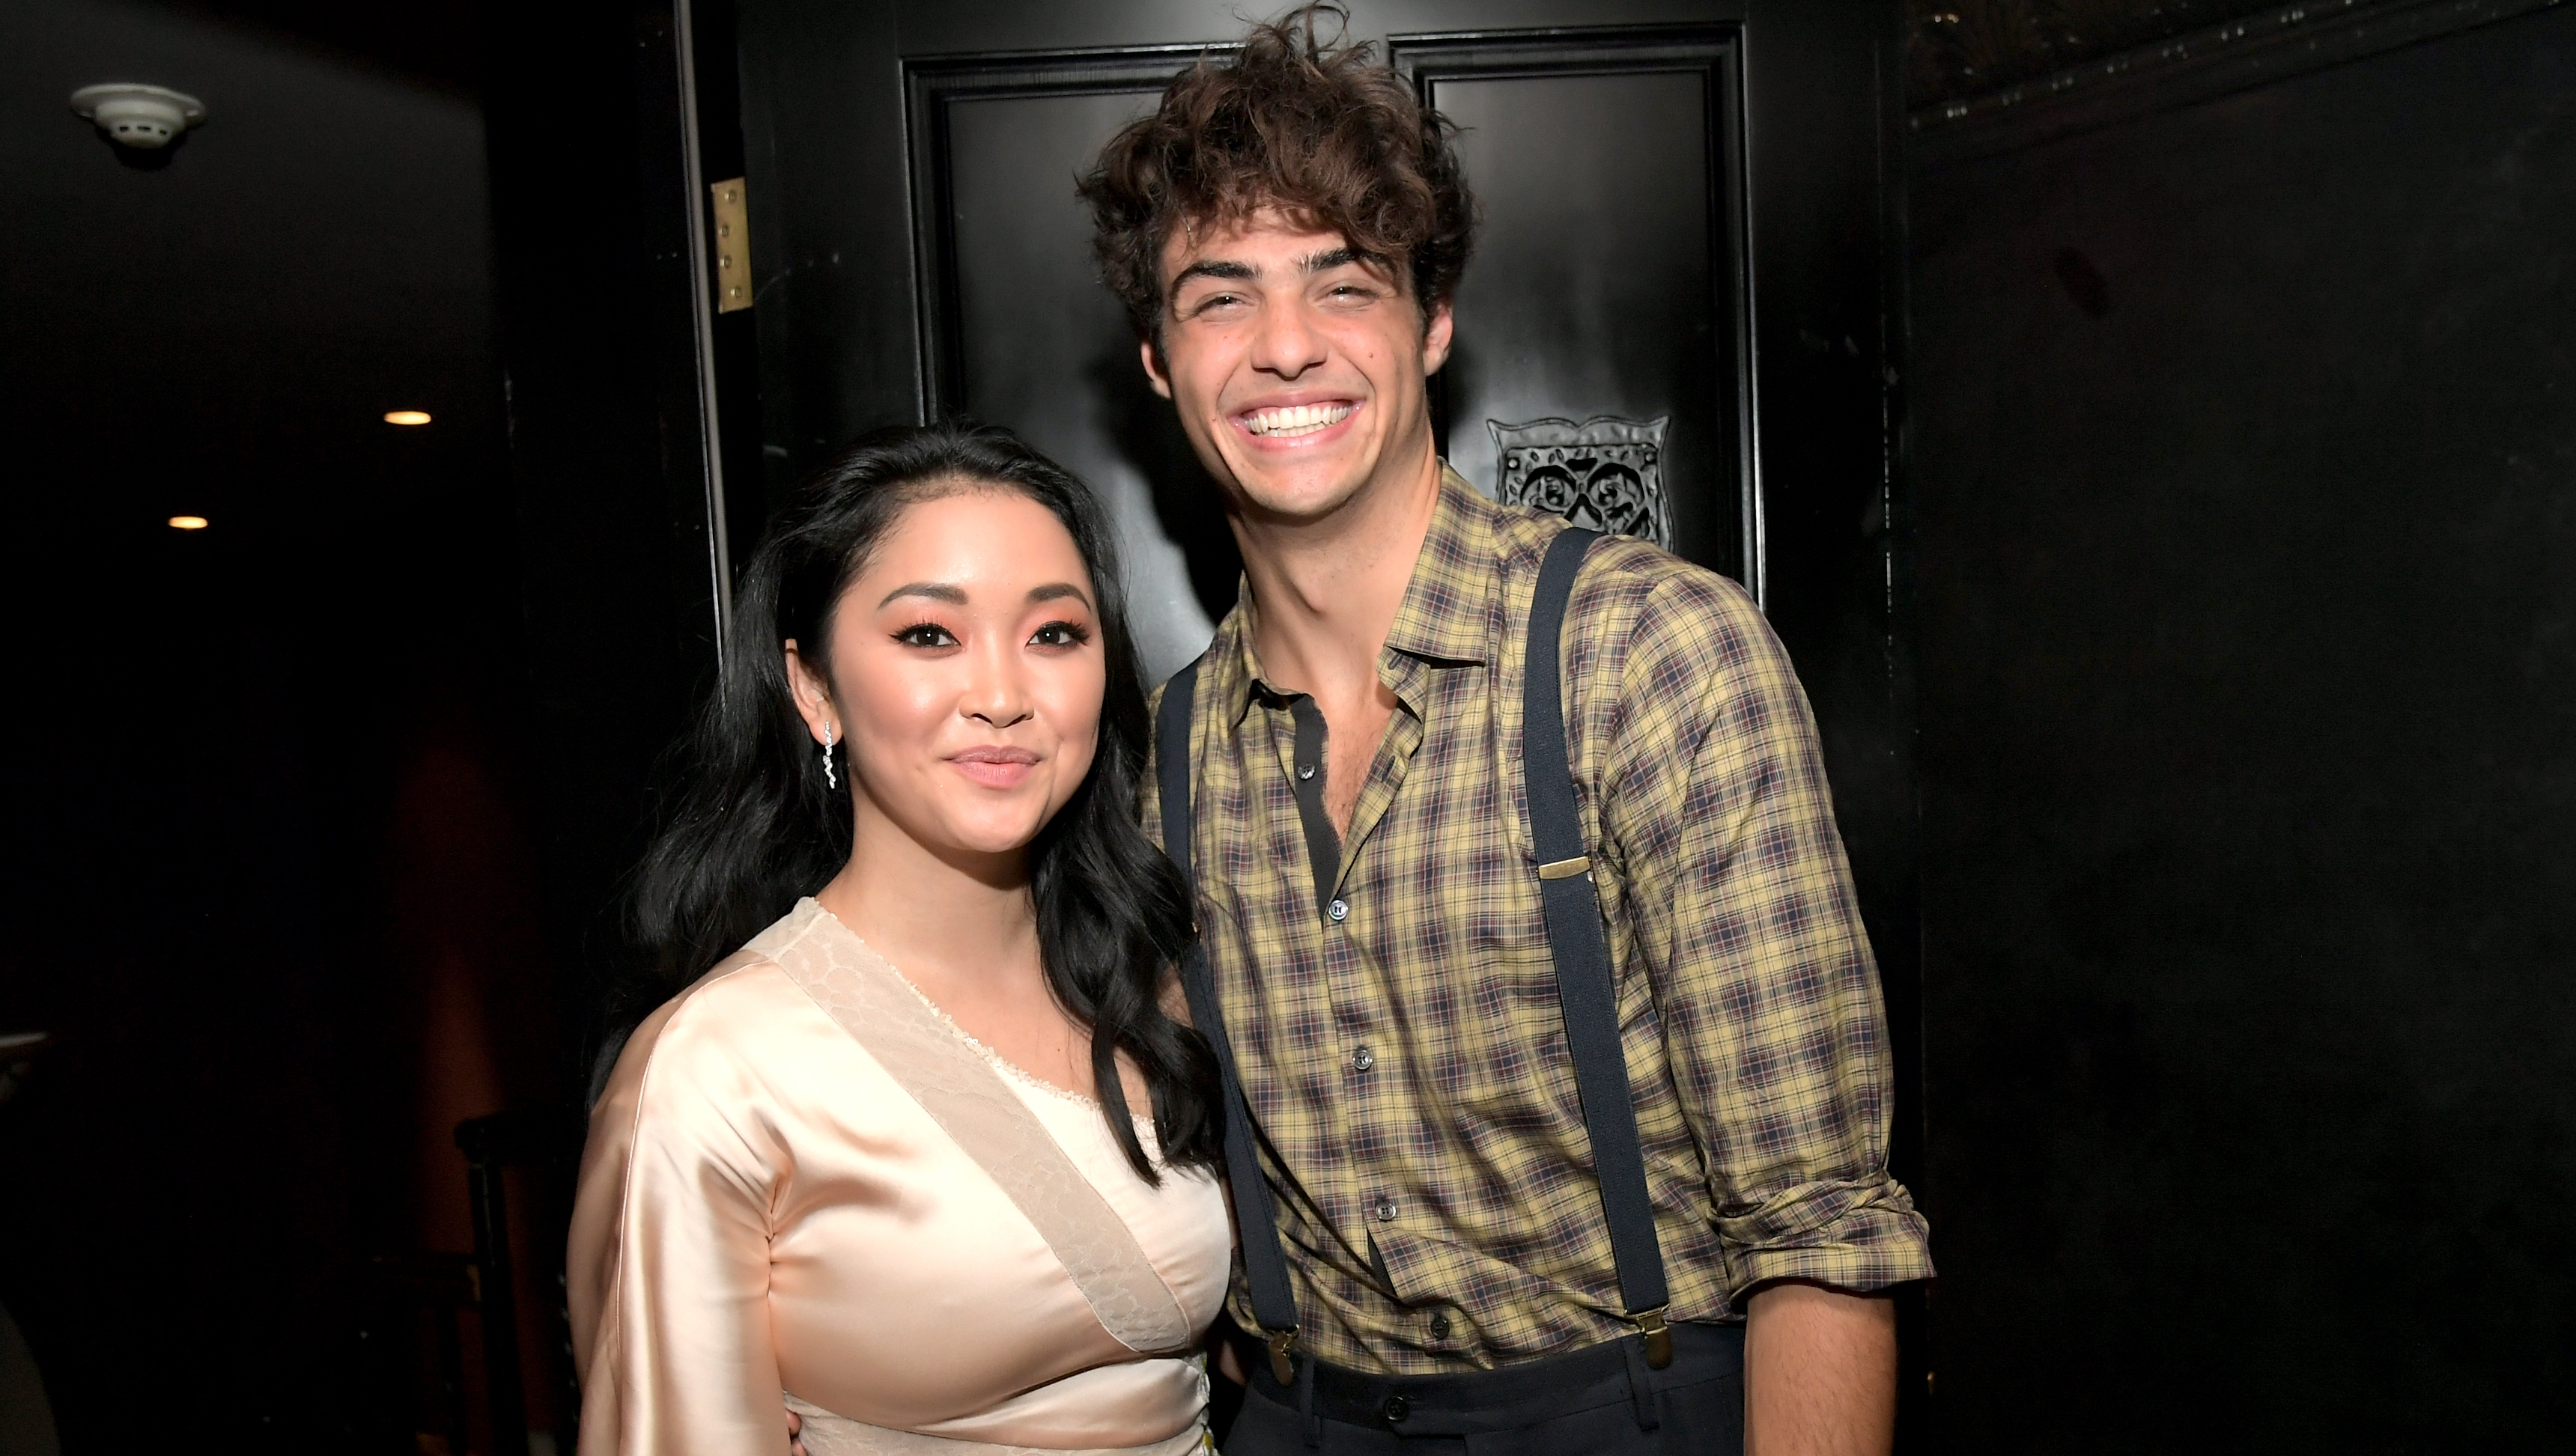 Noah Centineo May Propose To Lana Condor